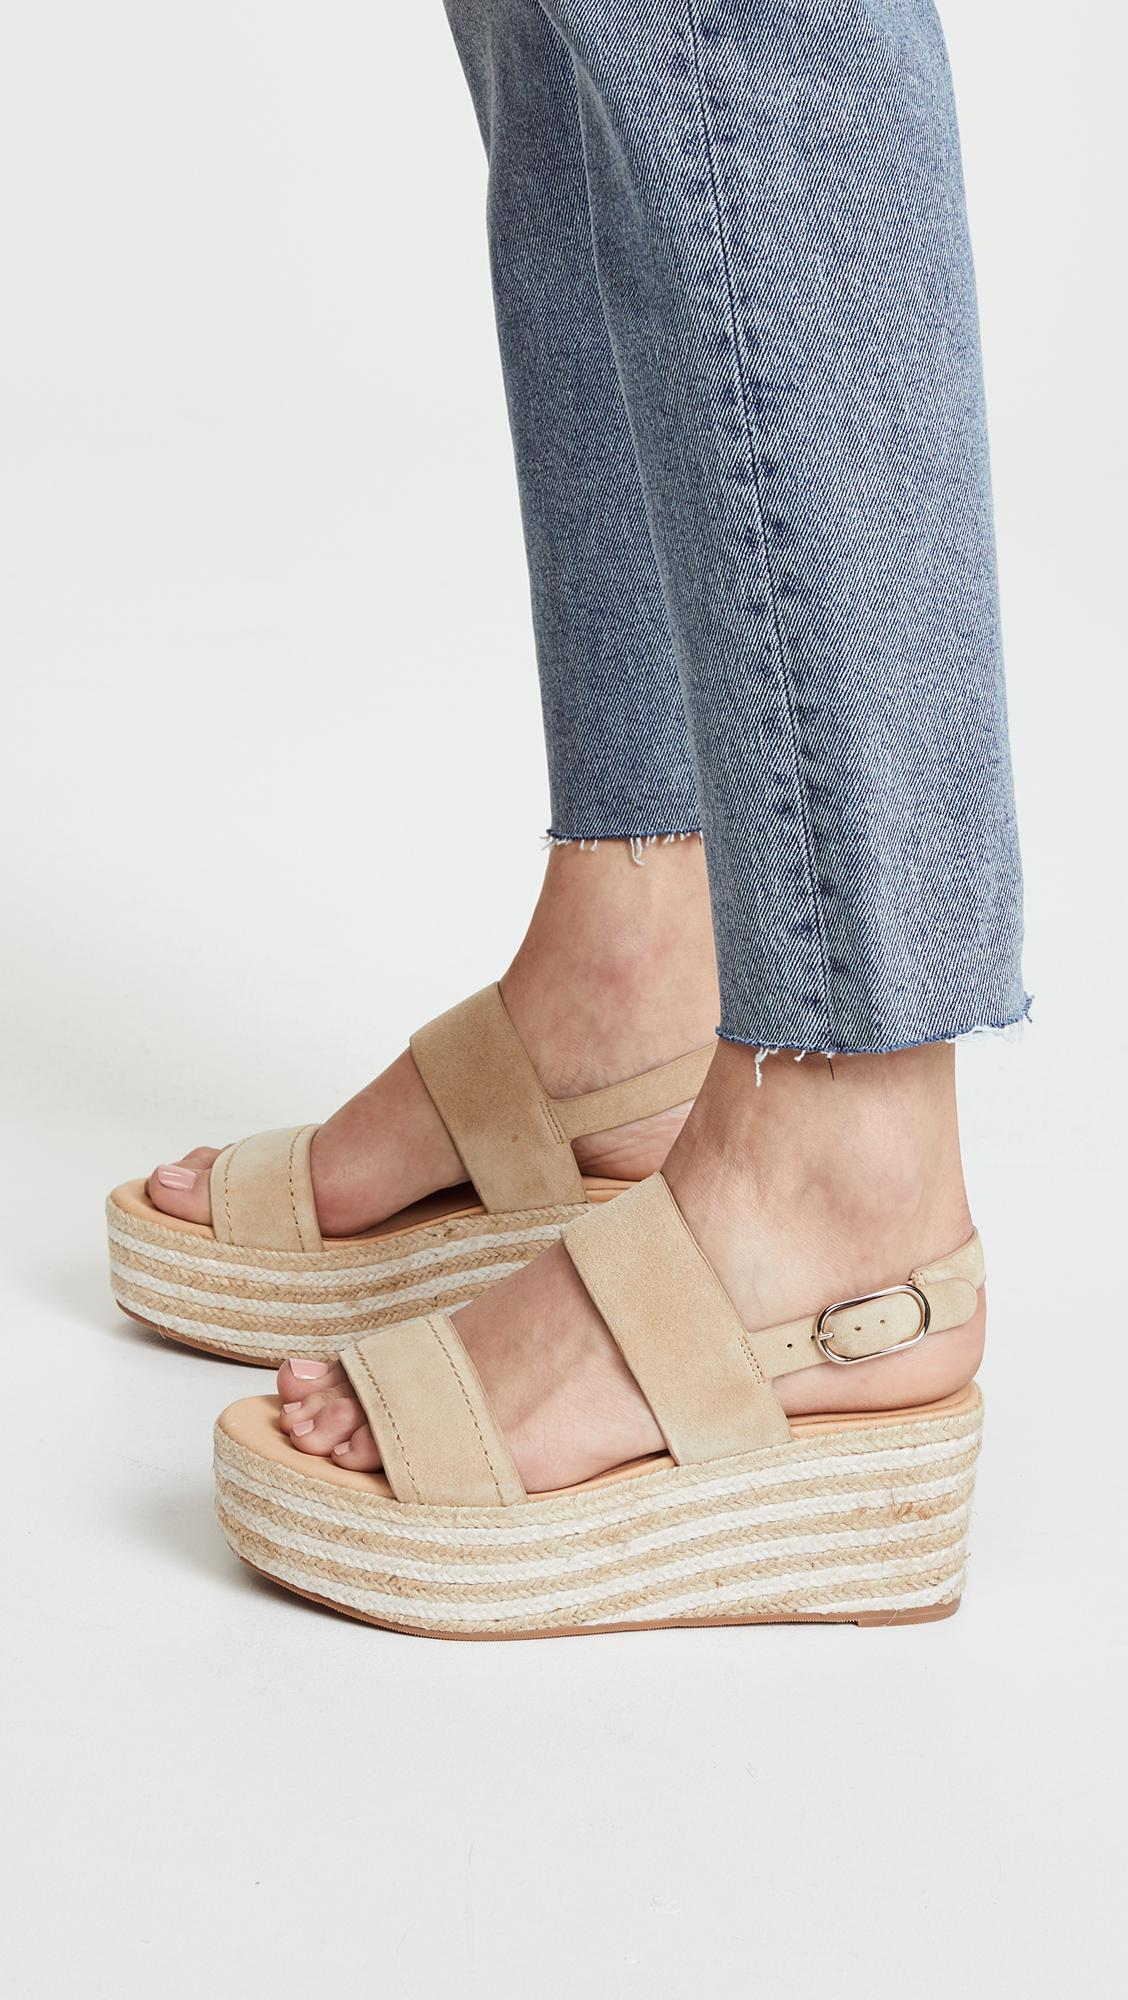 Joie Galicia Platform Wedge Espadrille Sandal yi61nNVF